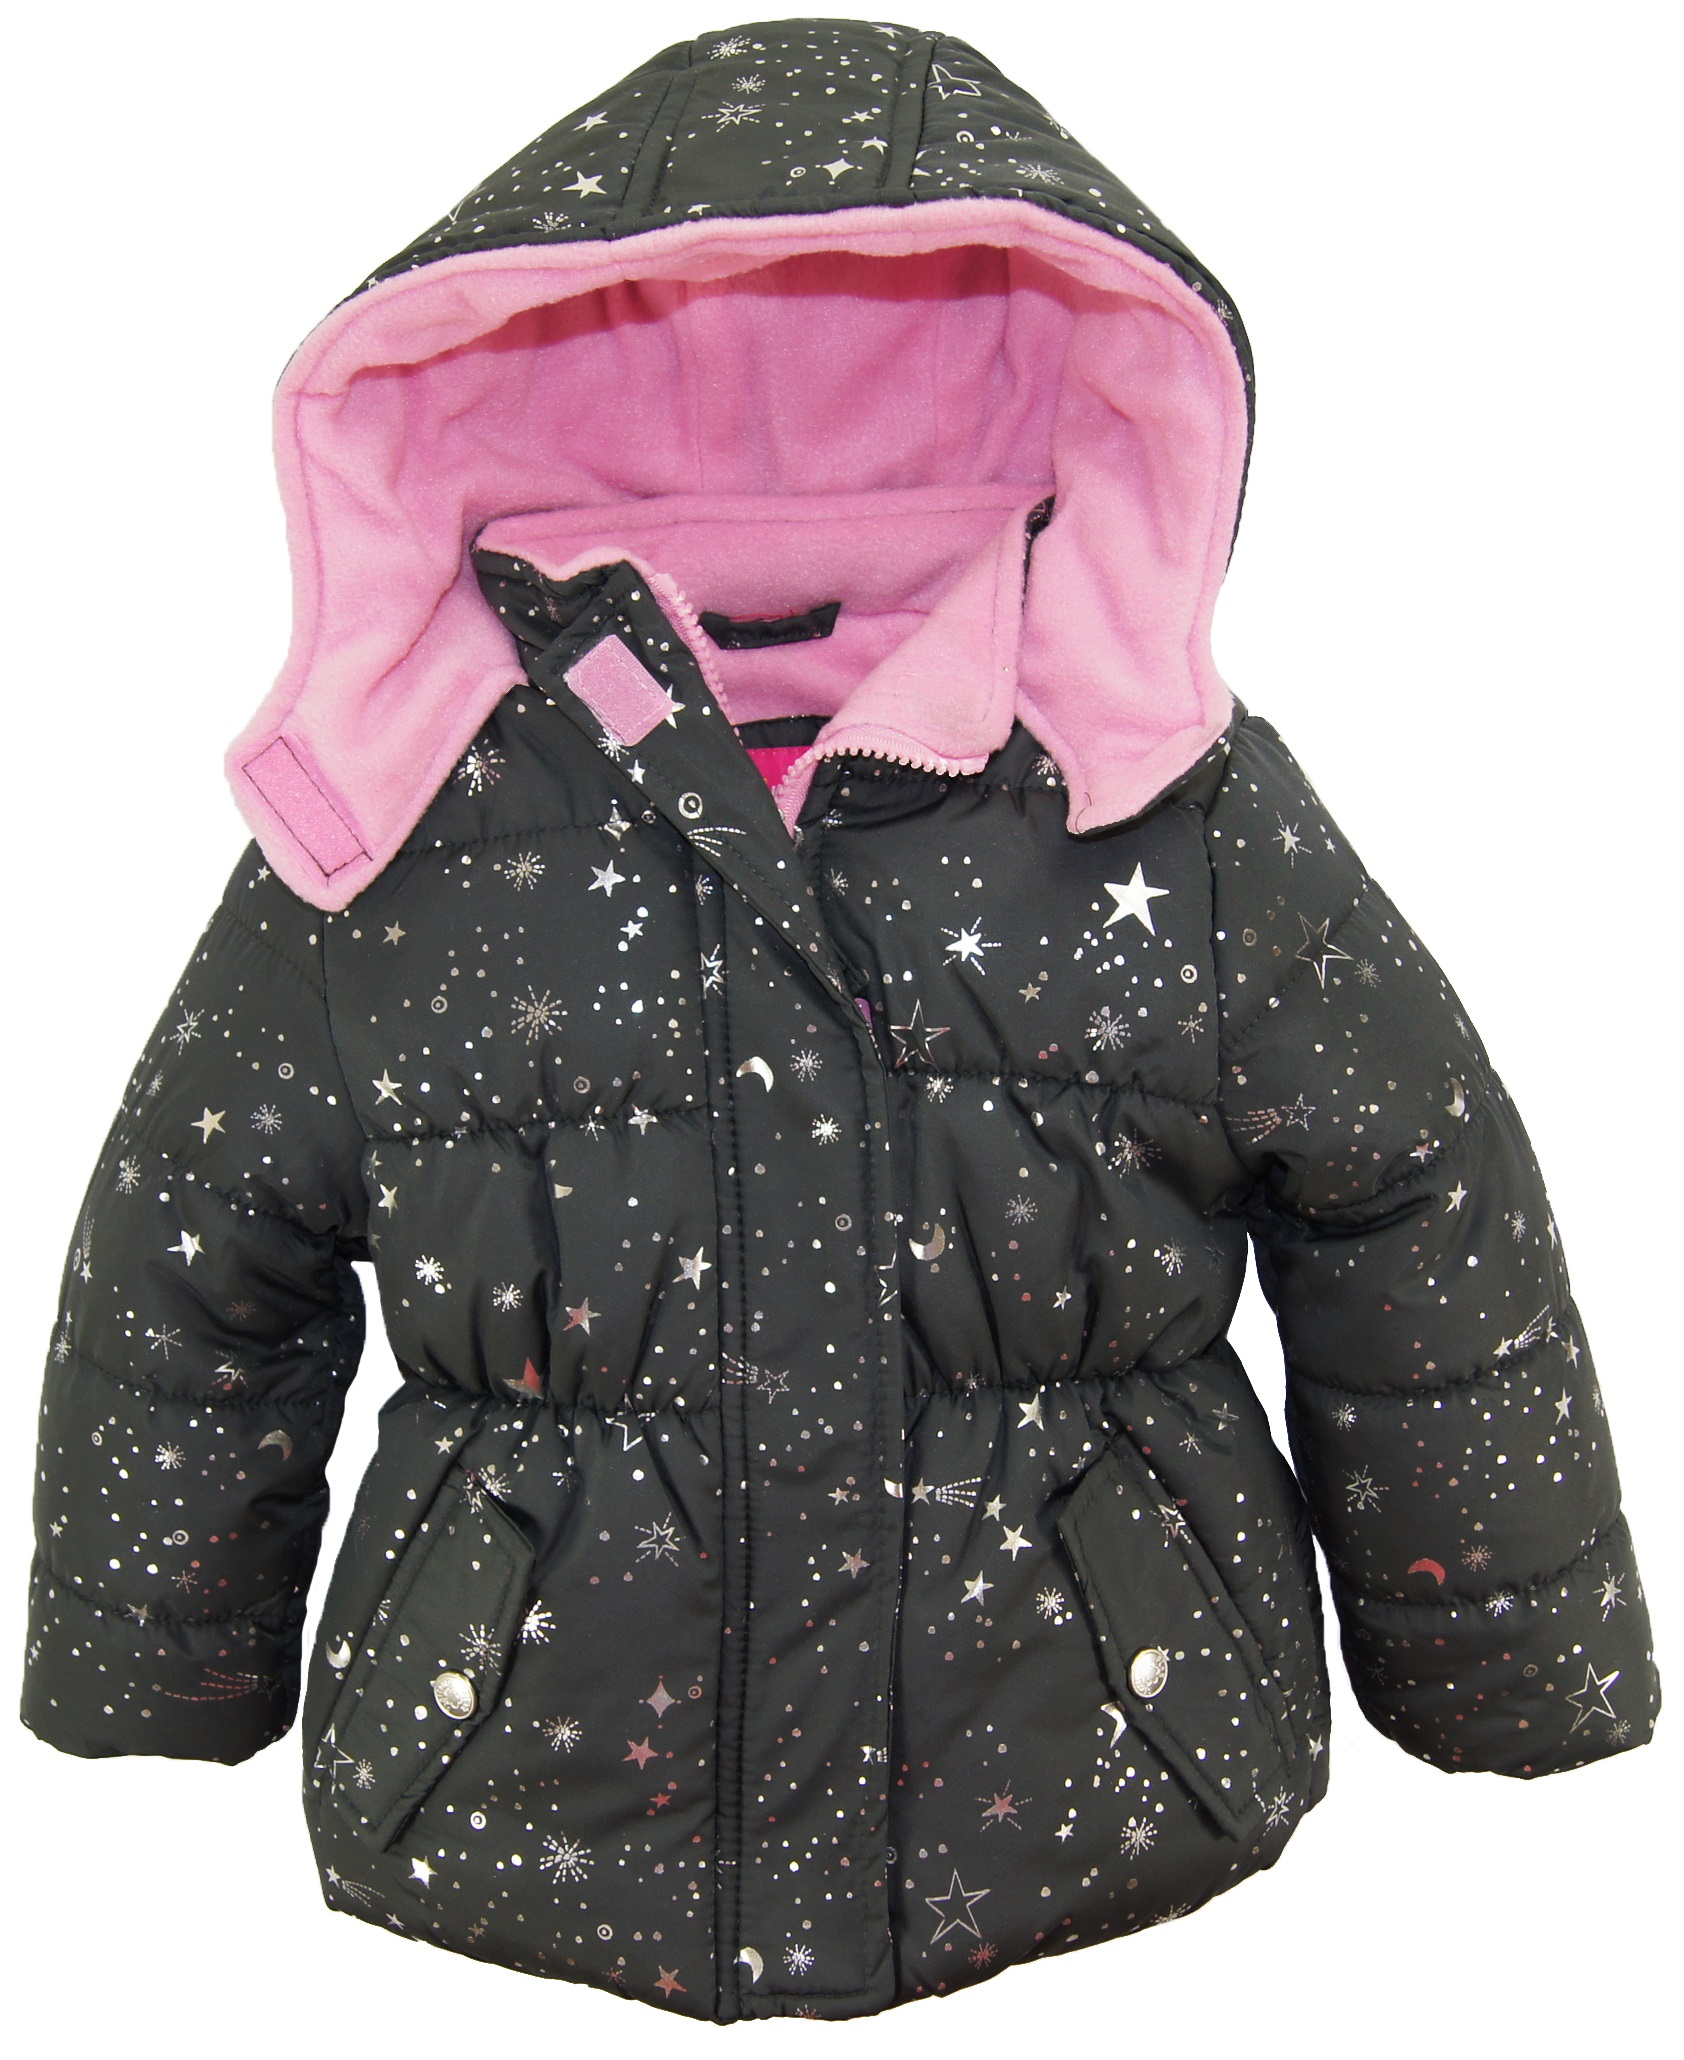 coat pink and ships winter product jacket bubble silver star clothing puffer platinum overstock hat shoes girls canada to scarf